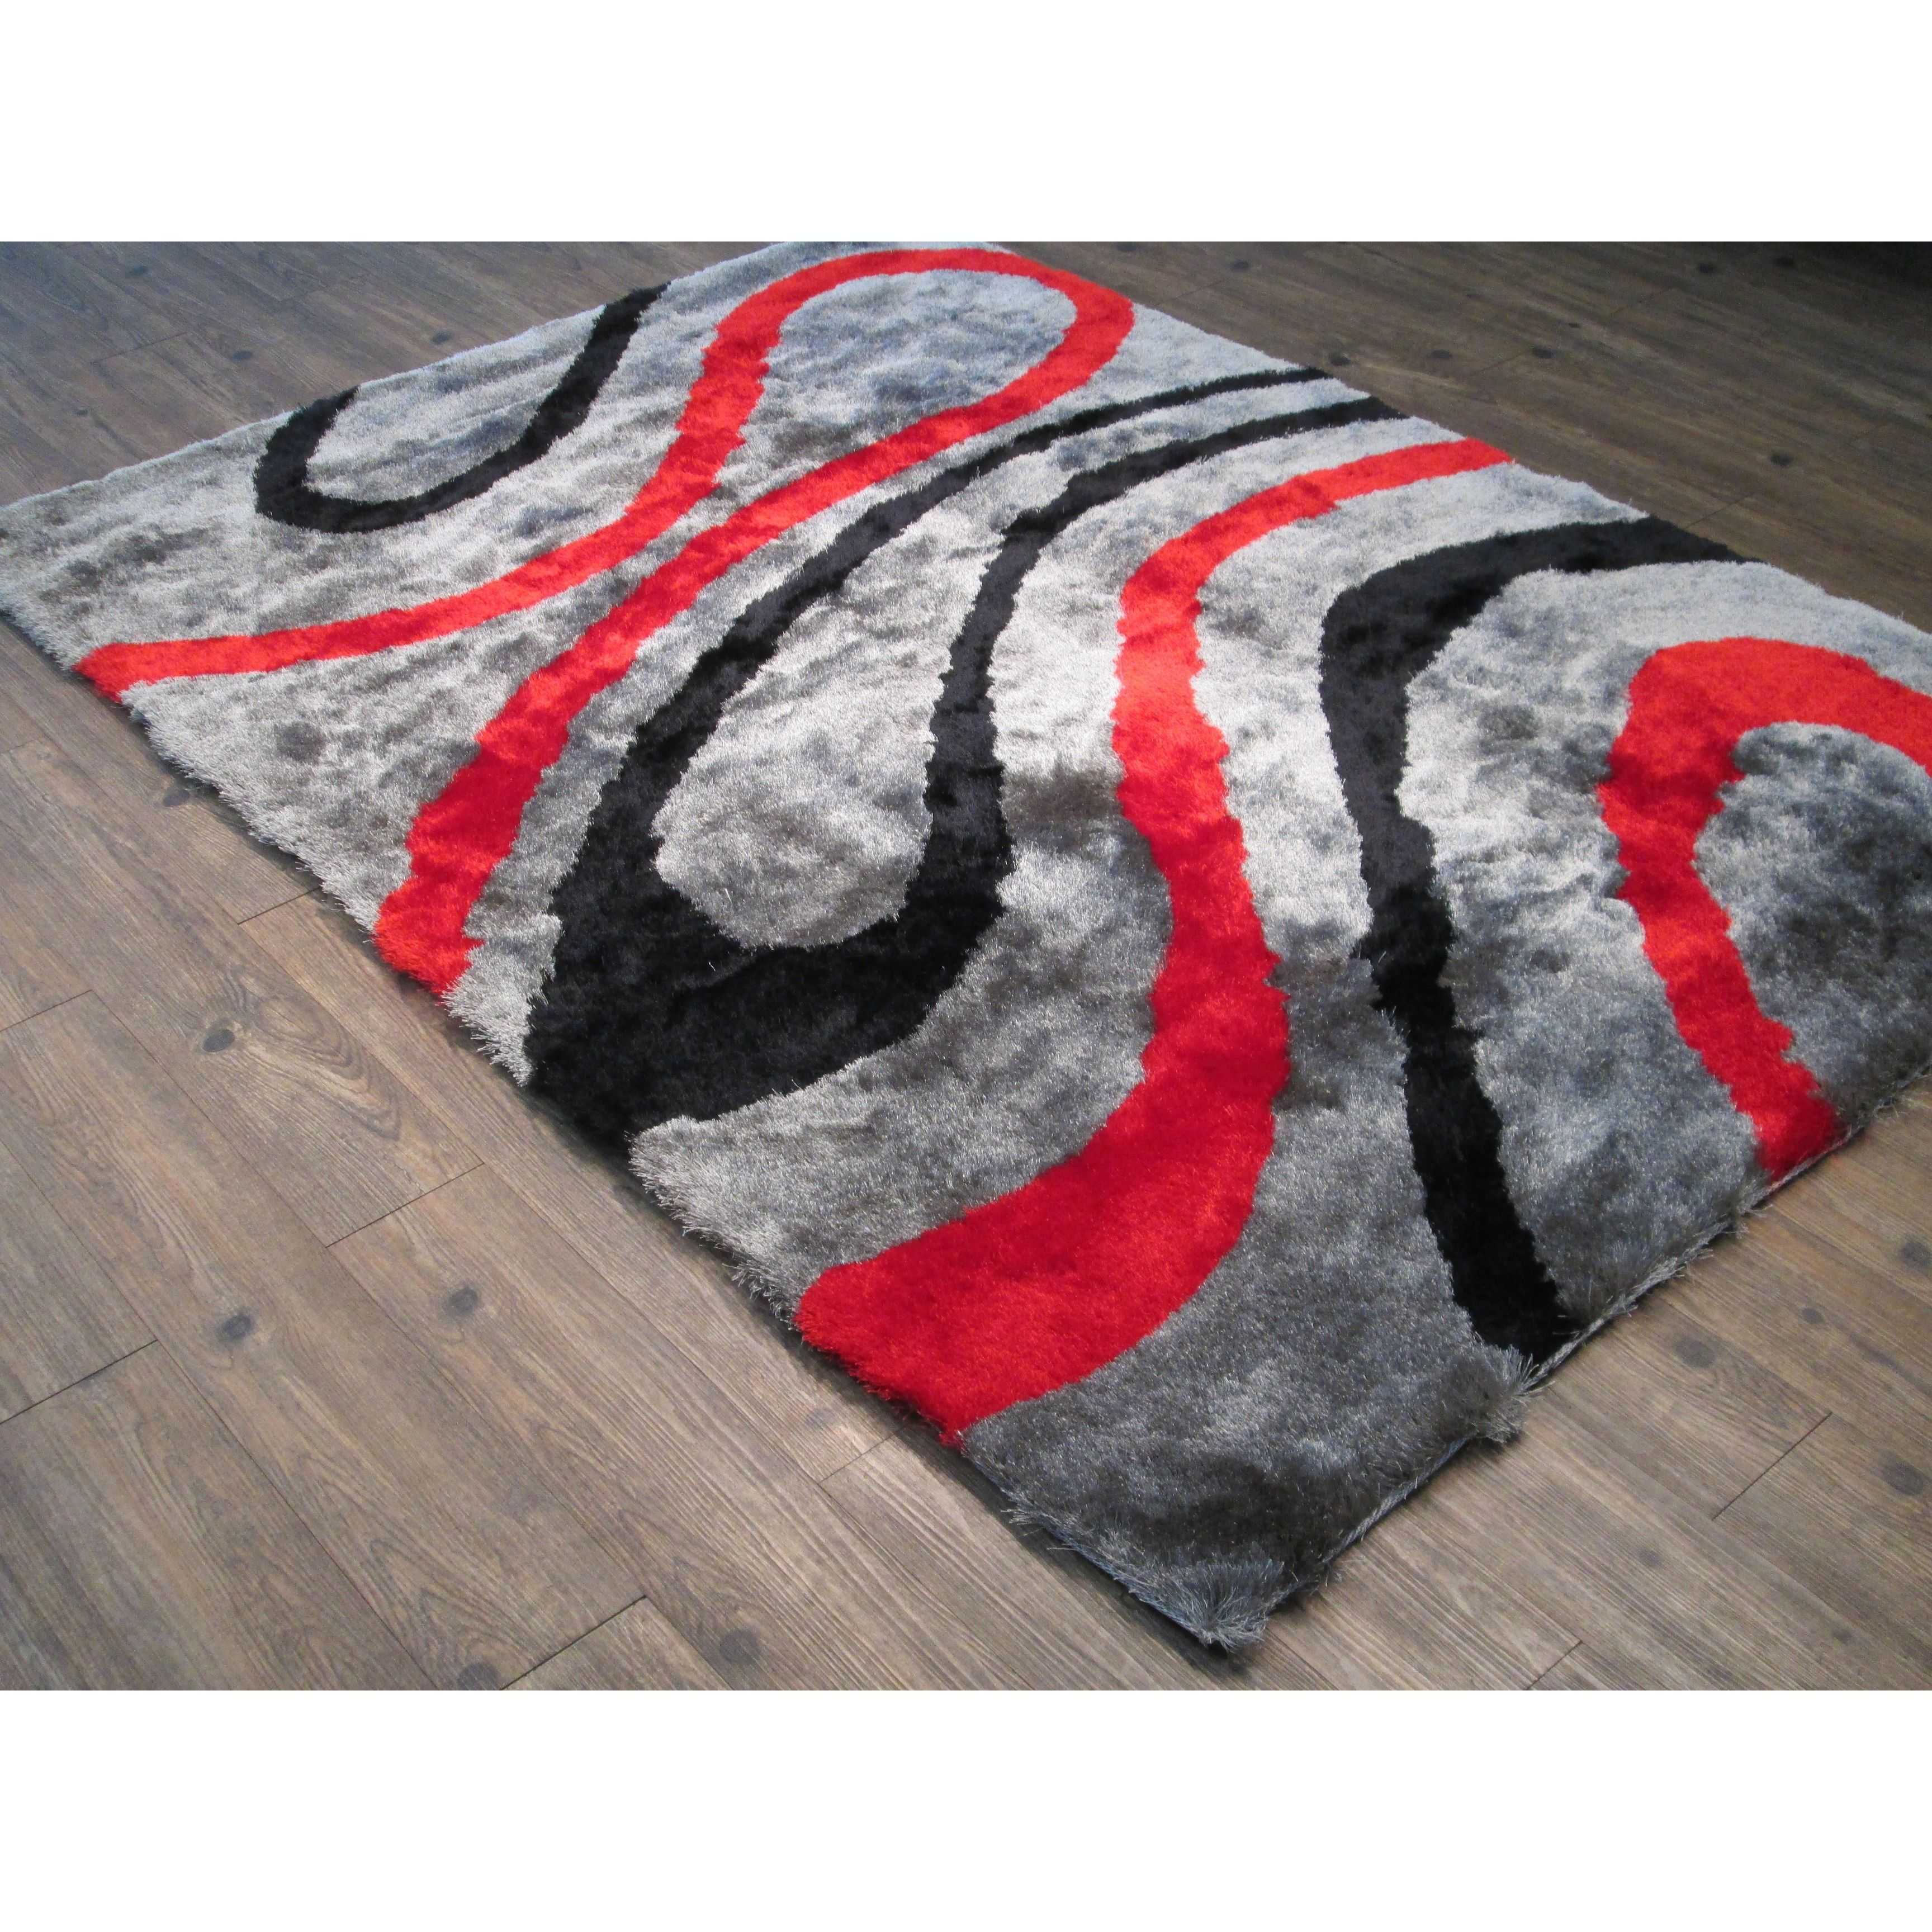 Rug Addiction Red Silver Grey Two Inch Pile Thickness Hand Tufted